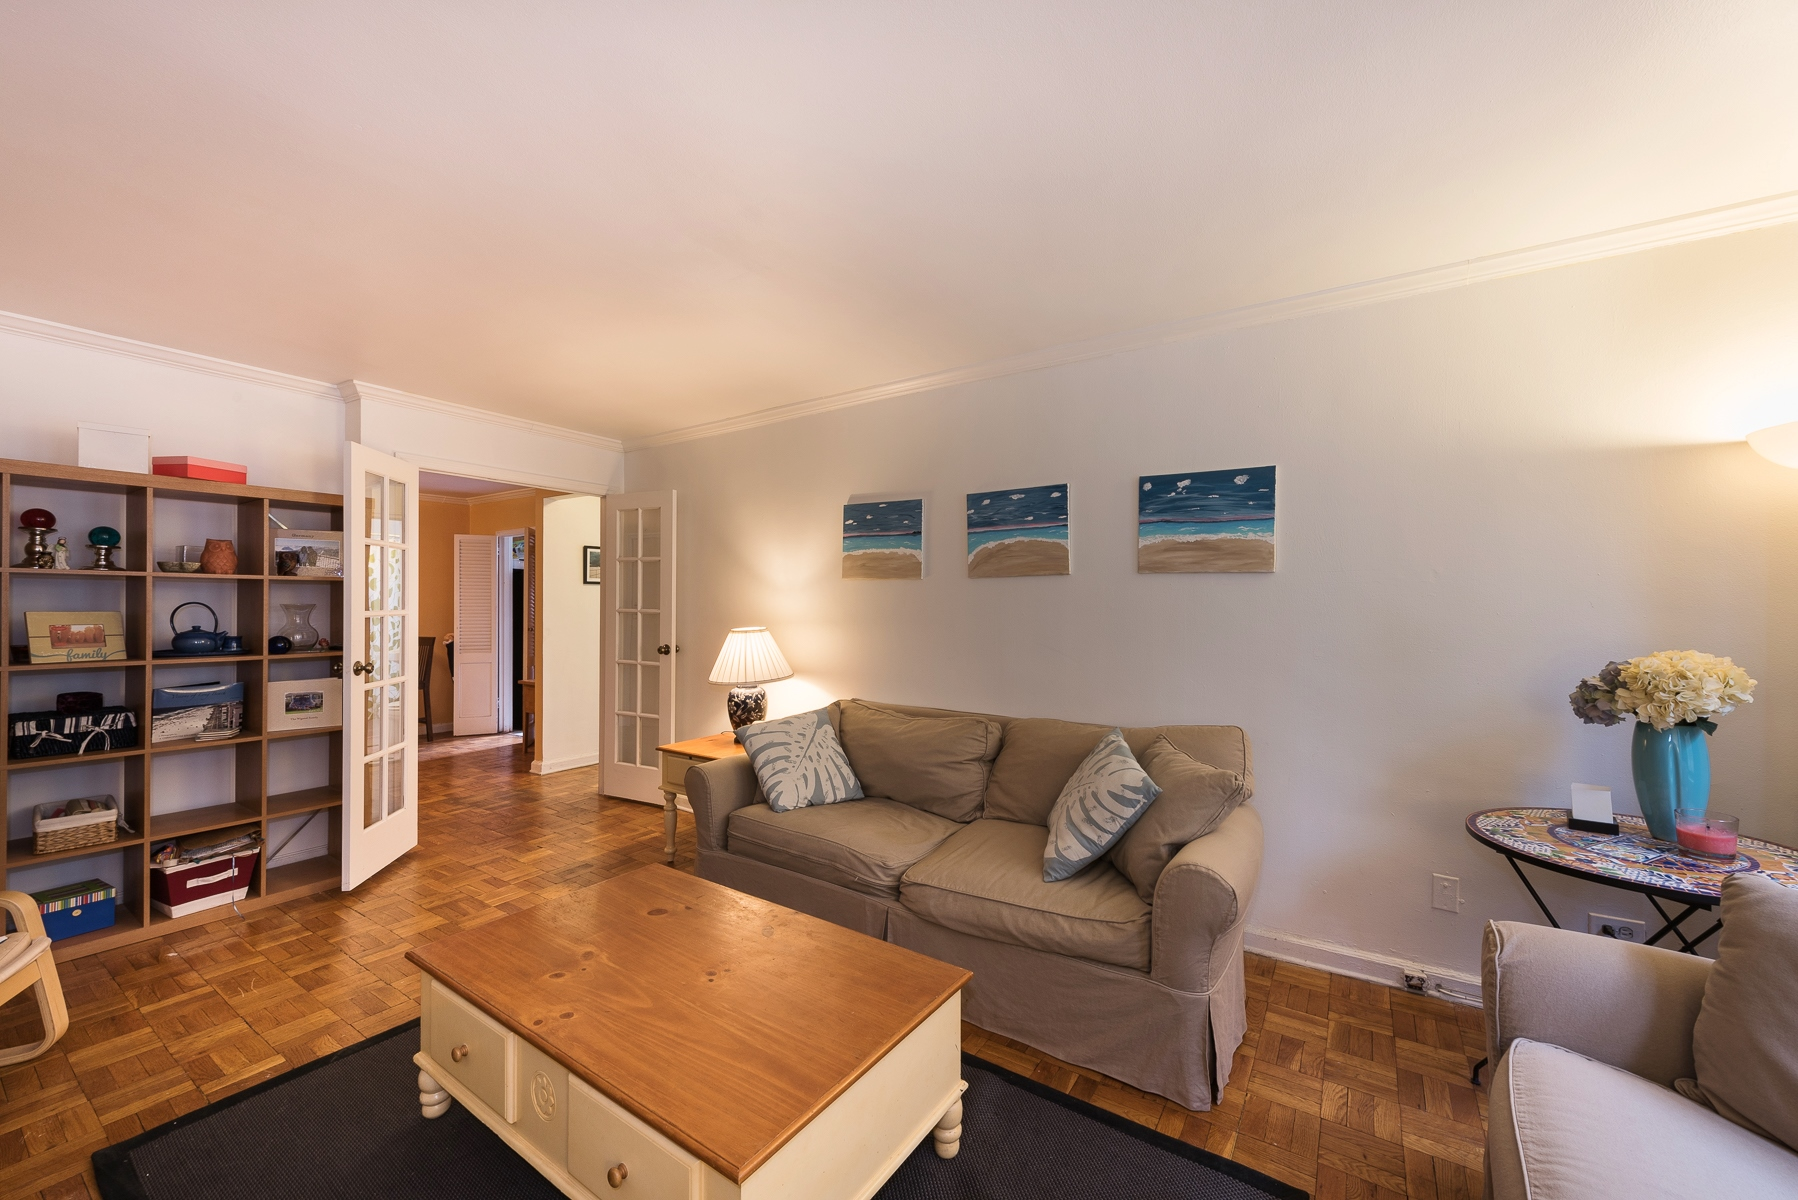 Co-op for Rent at Beautiful 1 BR Co-op Rental 5235 Post Road 1A Riverdale, New York 10471 United States